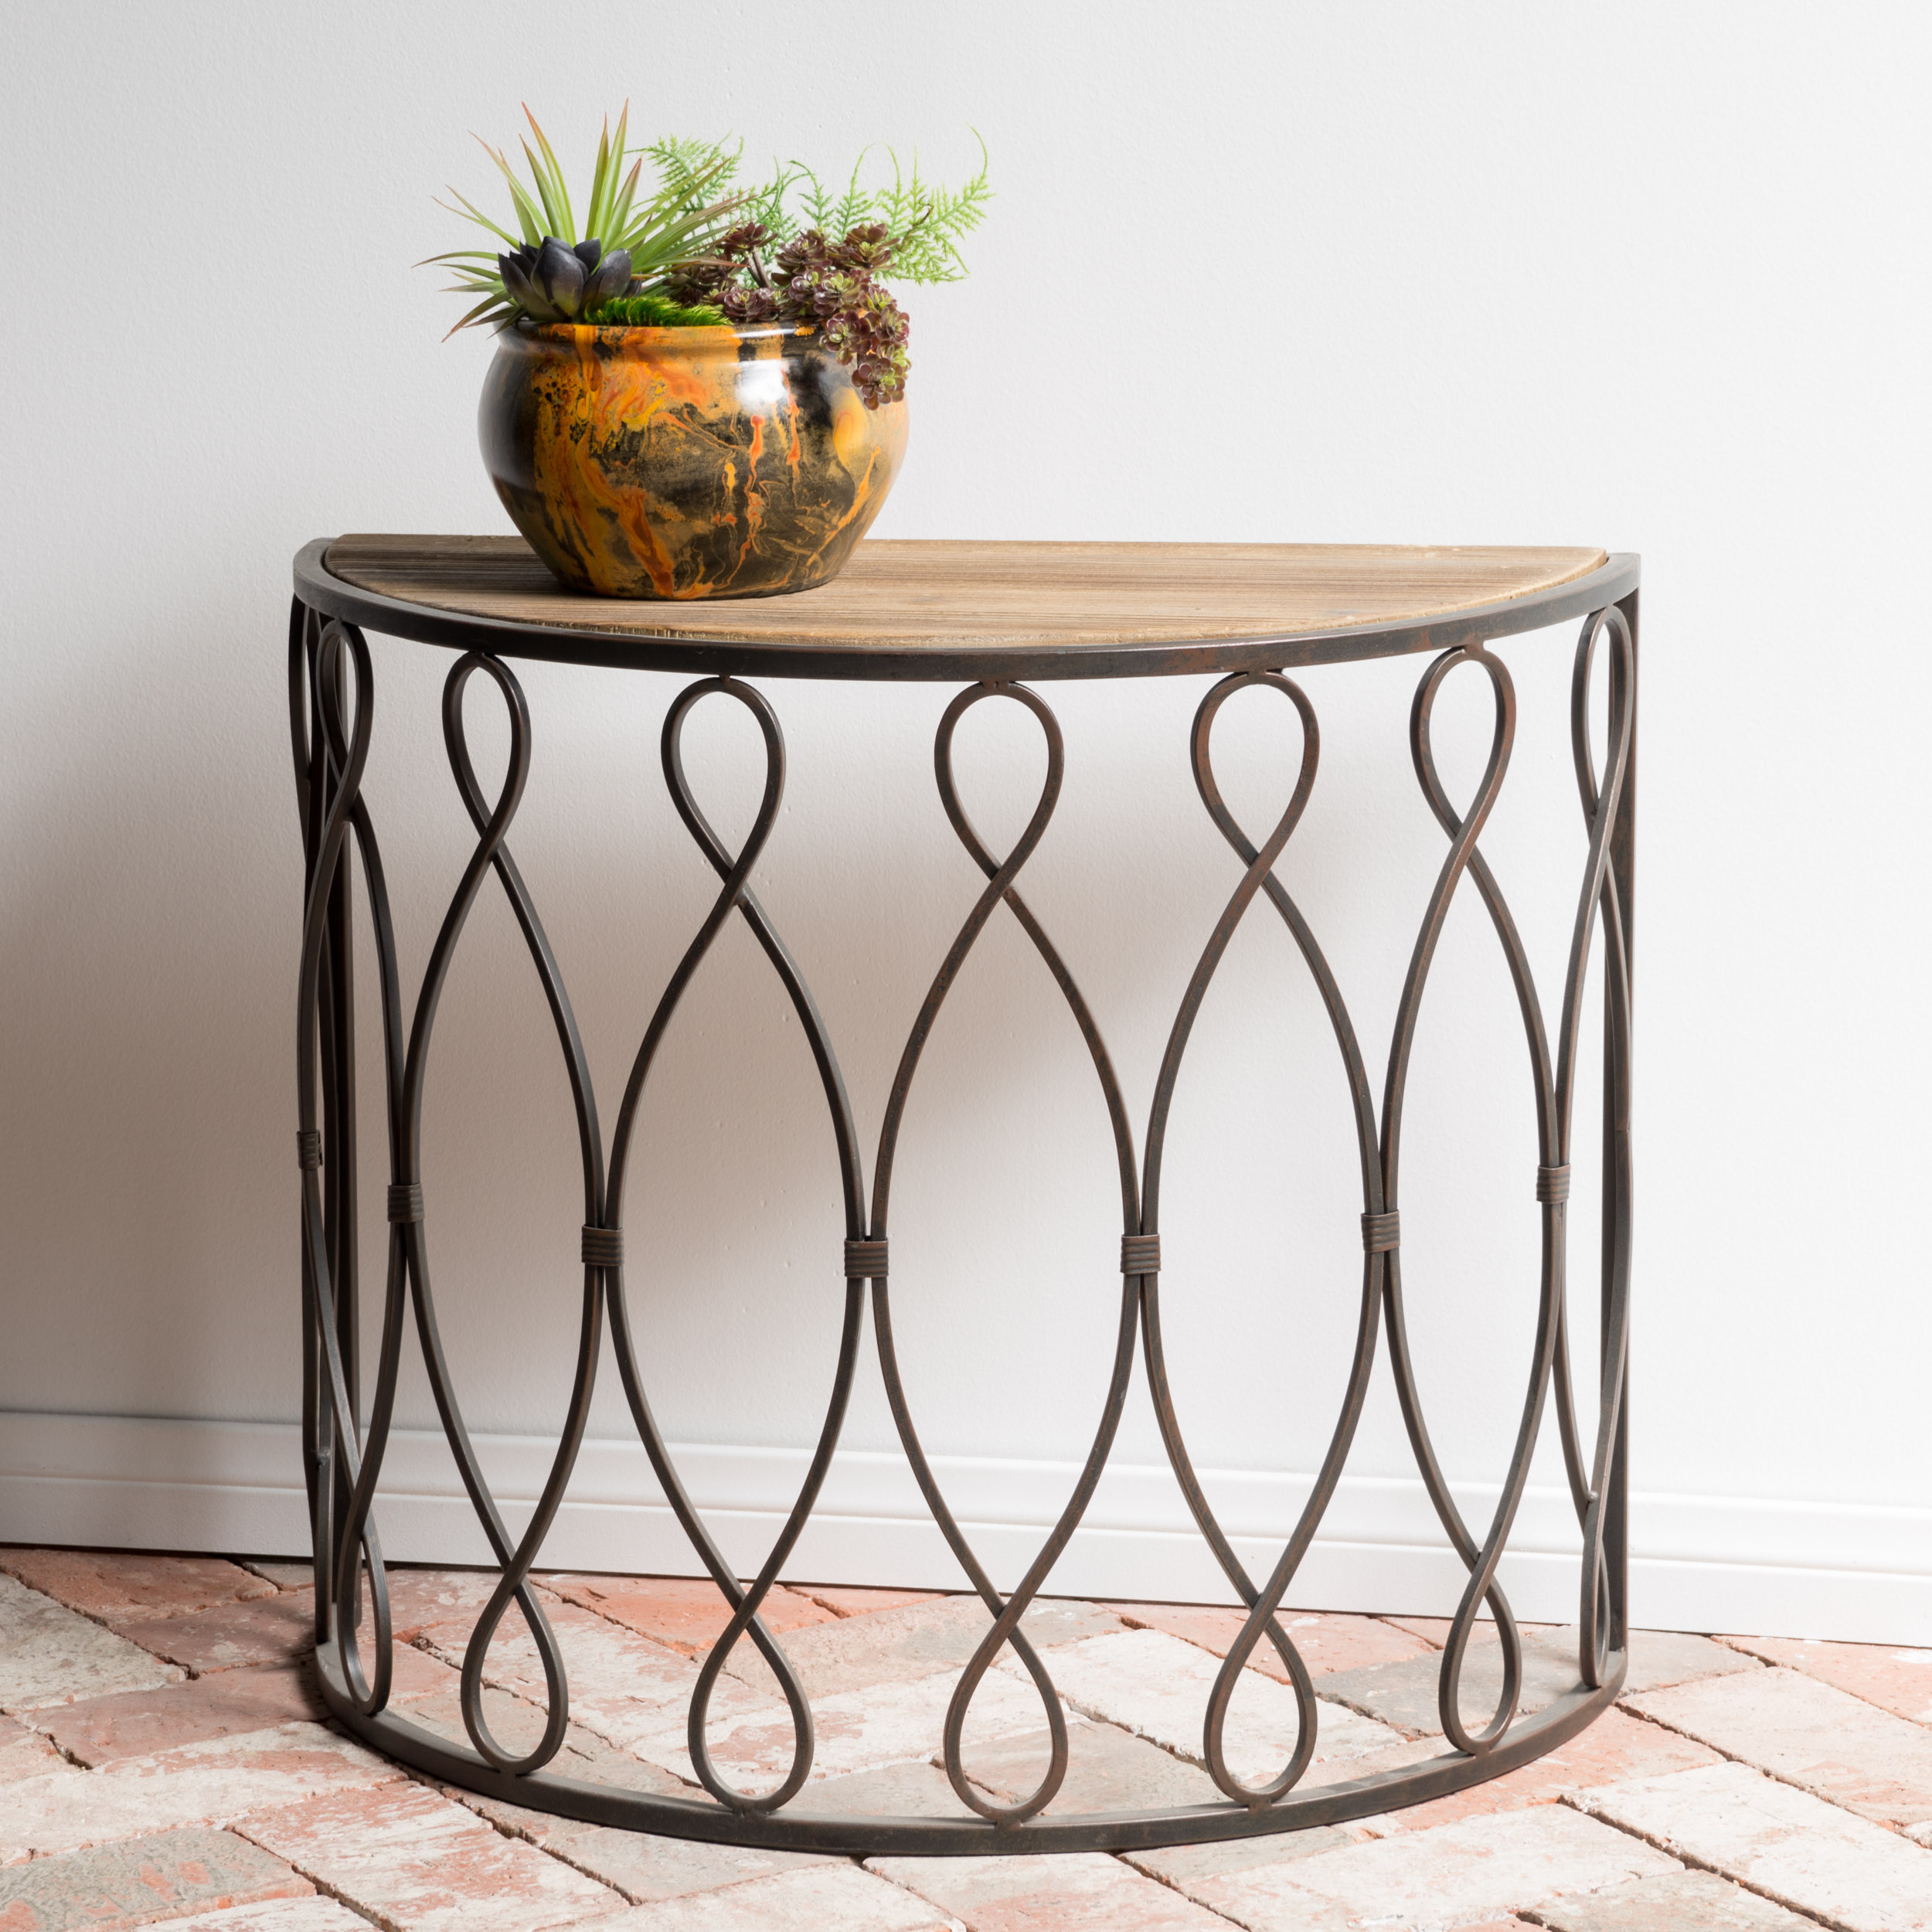 Melissa White Rusty Firwood Accent Table, Small by GDF Studio